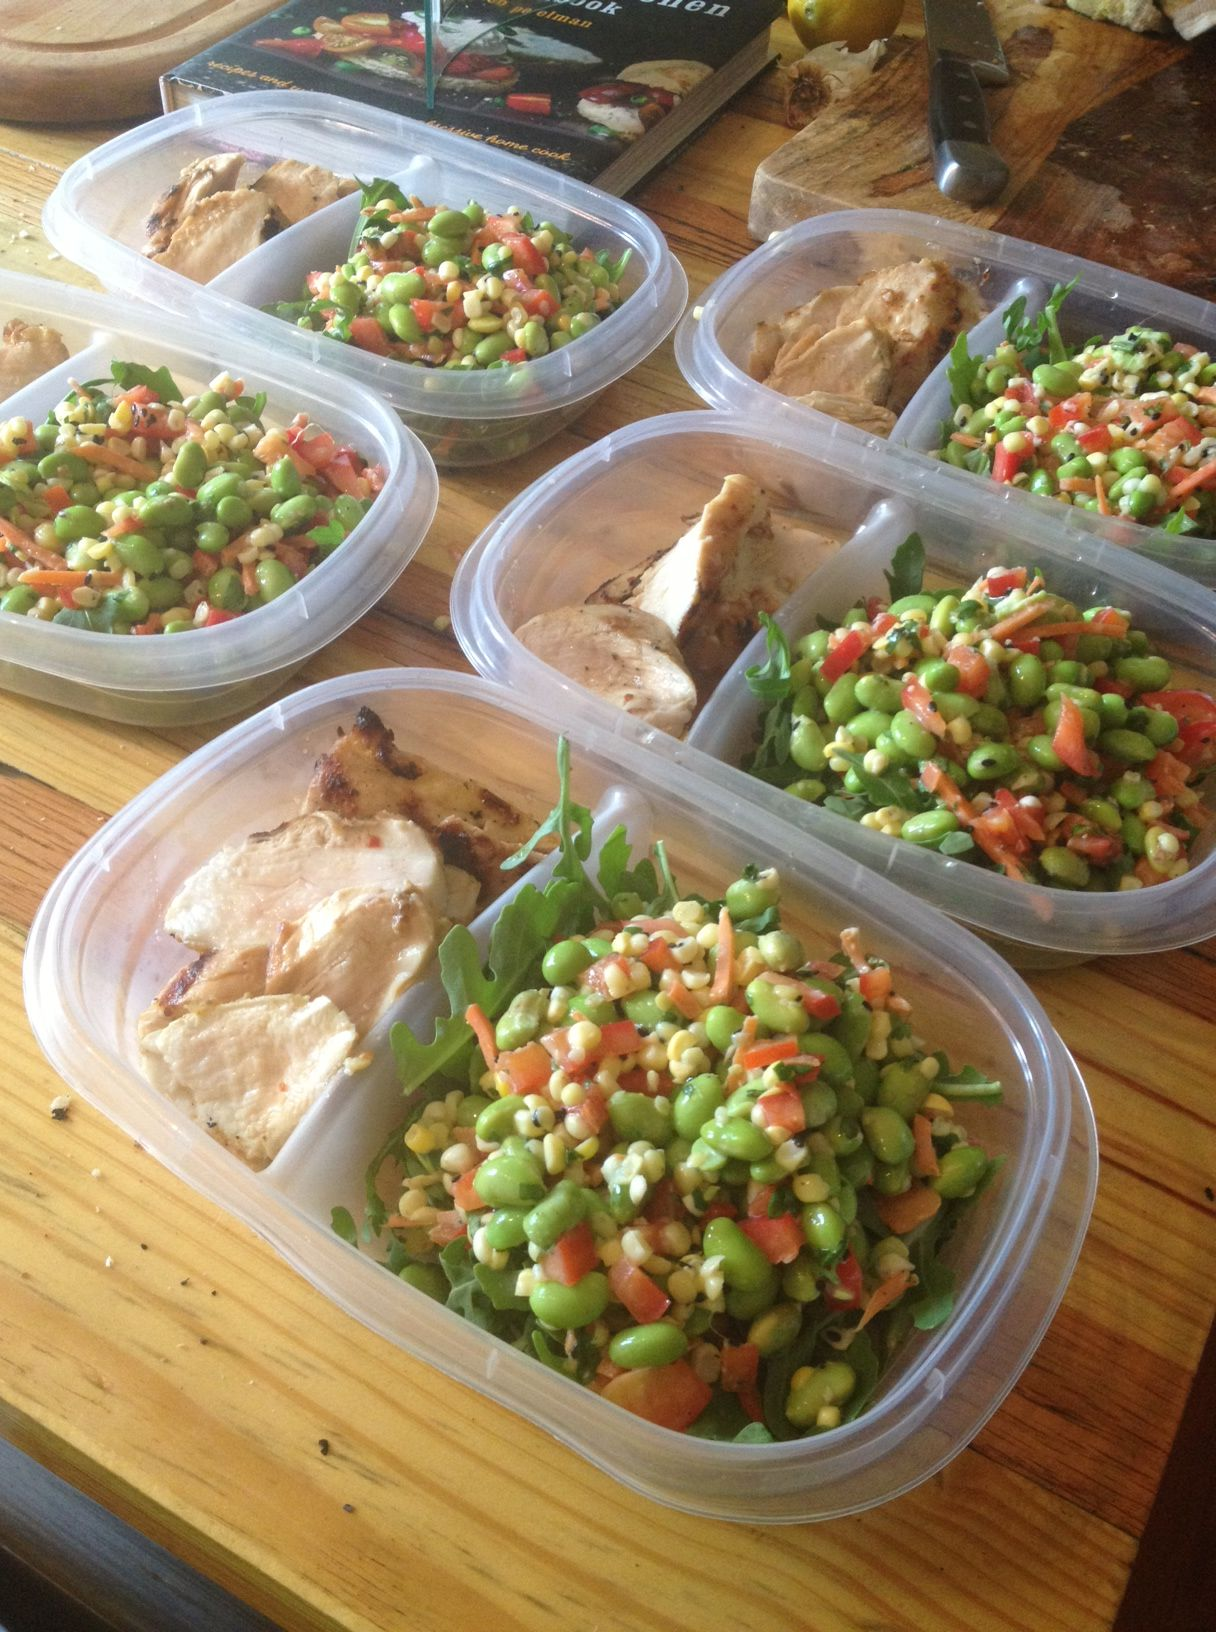 lunchbox life: miso grilled chicken and edamame salad